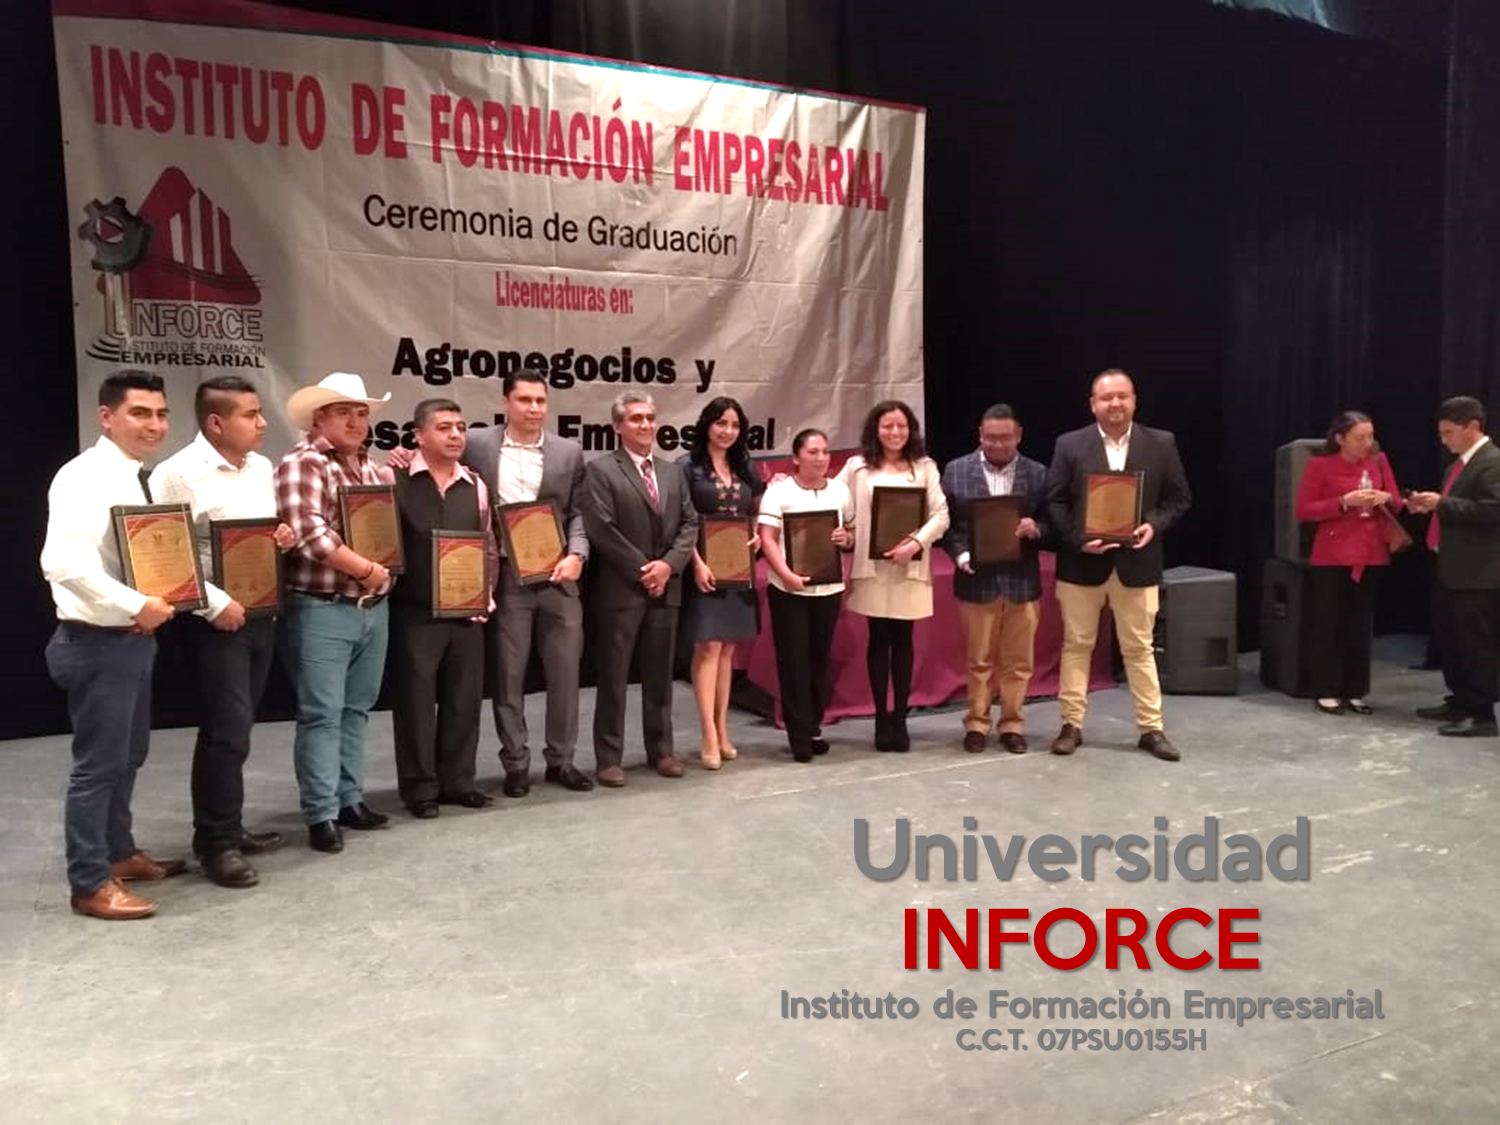 universidad-inforce-comitan-2da-generacion-diplomado-026.png